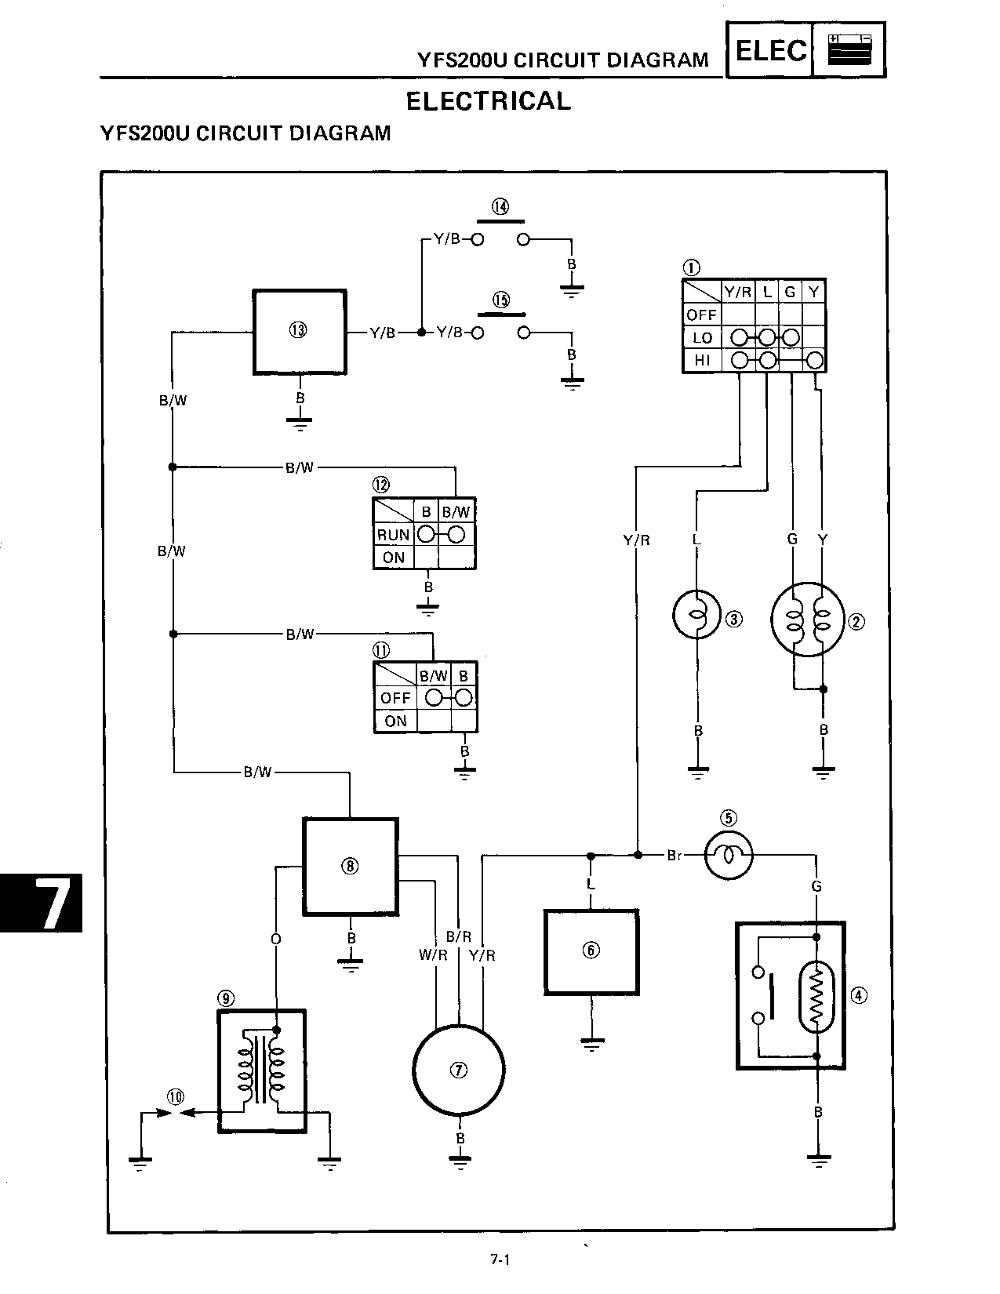 DIAGRAM] Yamaha Blaster Wiring Diagram For 01 Yfs200r FULL Version HD  Quality 01 Yfs200r - DIAGRAMDRY.JOKERGIOCHI.ITjoker